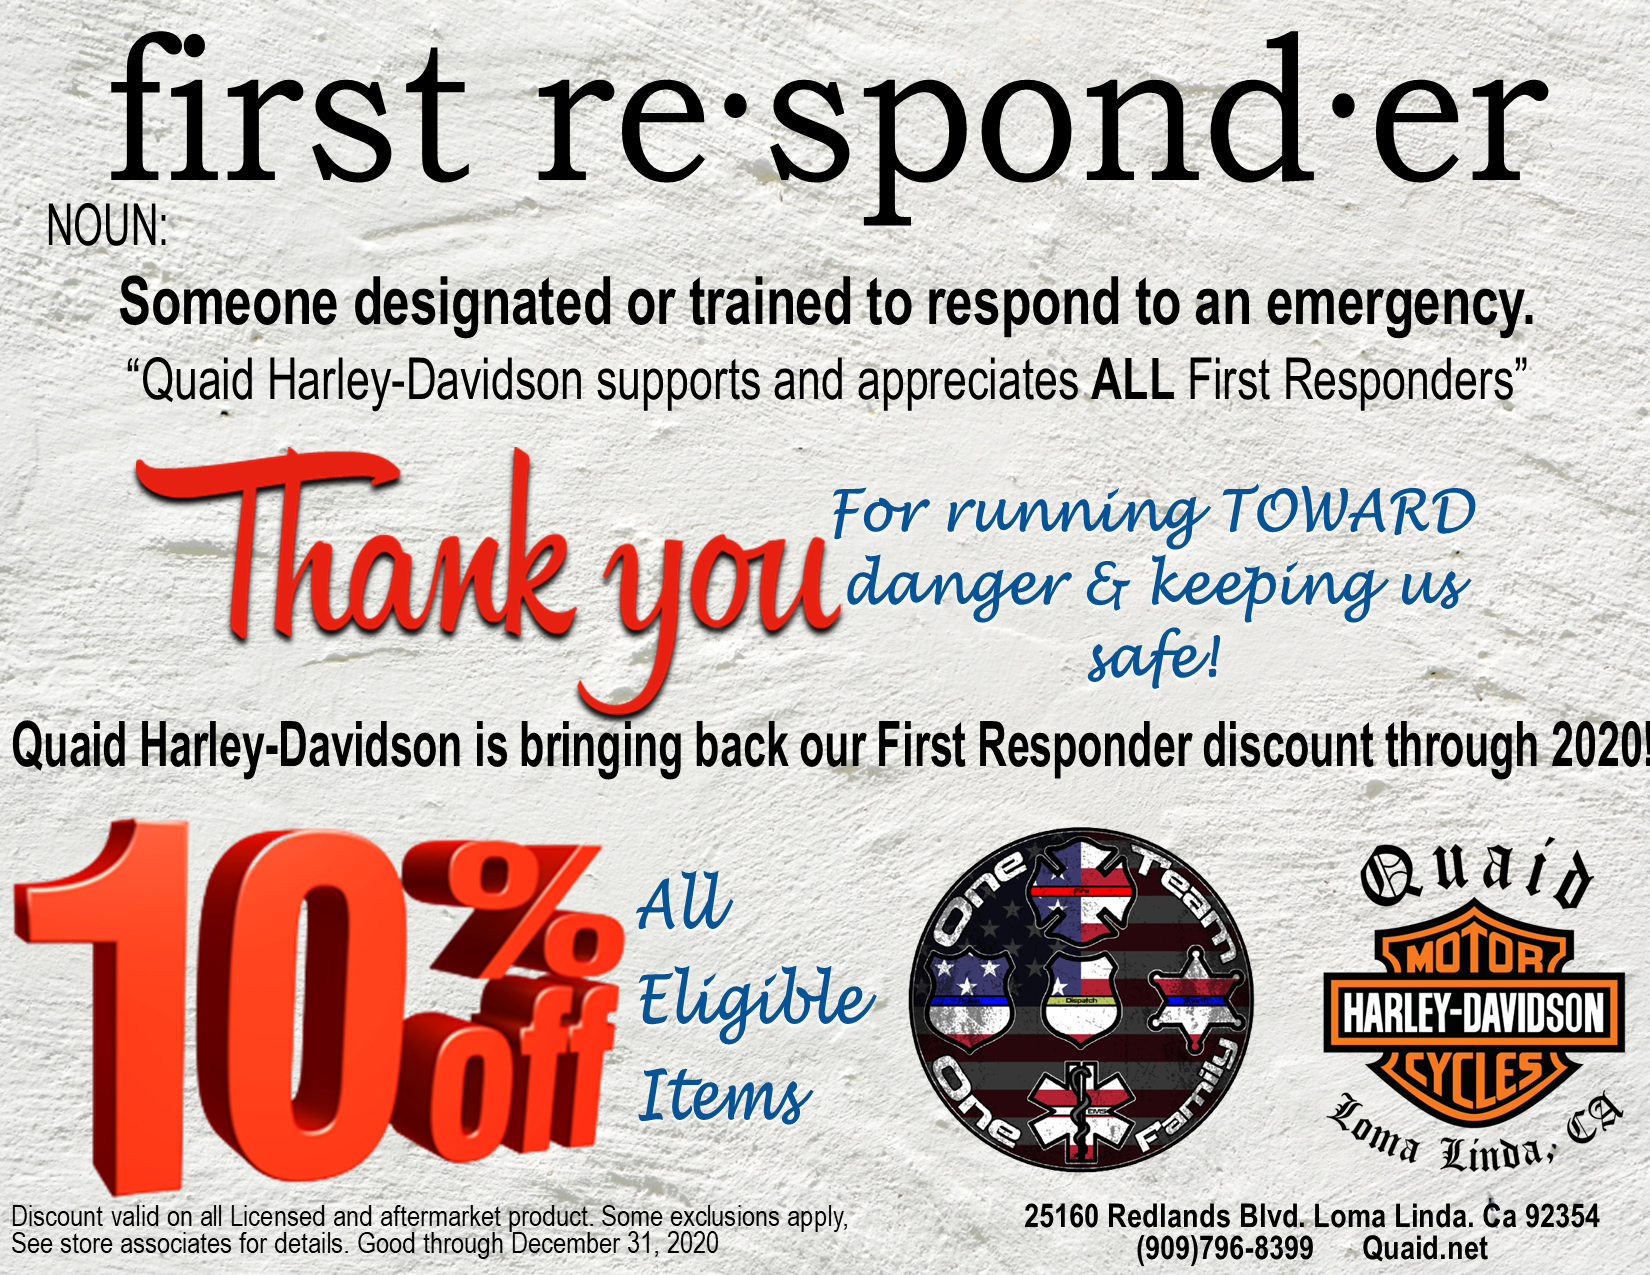 Quaid Harley-Davidson appreciates our First Responders! 10% off in the Quaid Harley-Davidson dealership through 2020!!